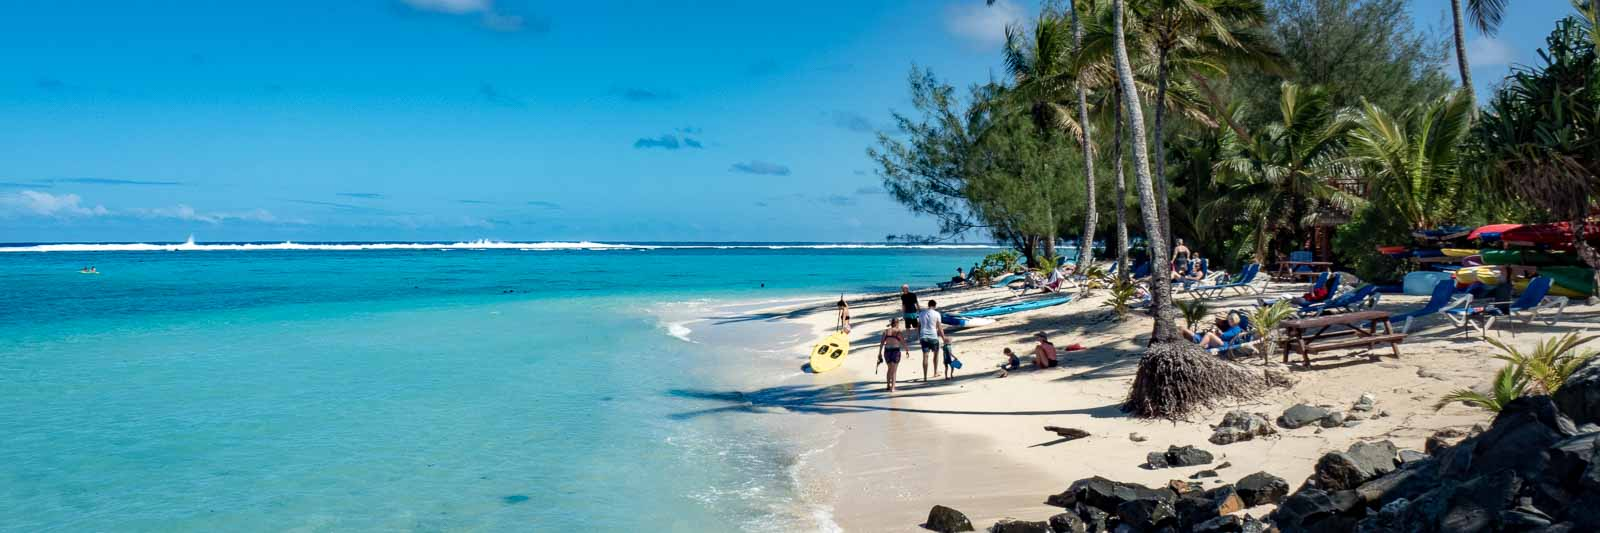 Swimming in turquoise waters and relaxing on white sand beaches are amongst the things to do in Rarotonga in the Cook Islands